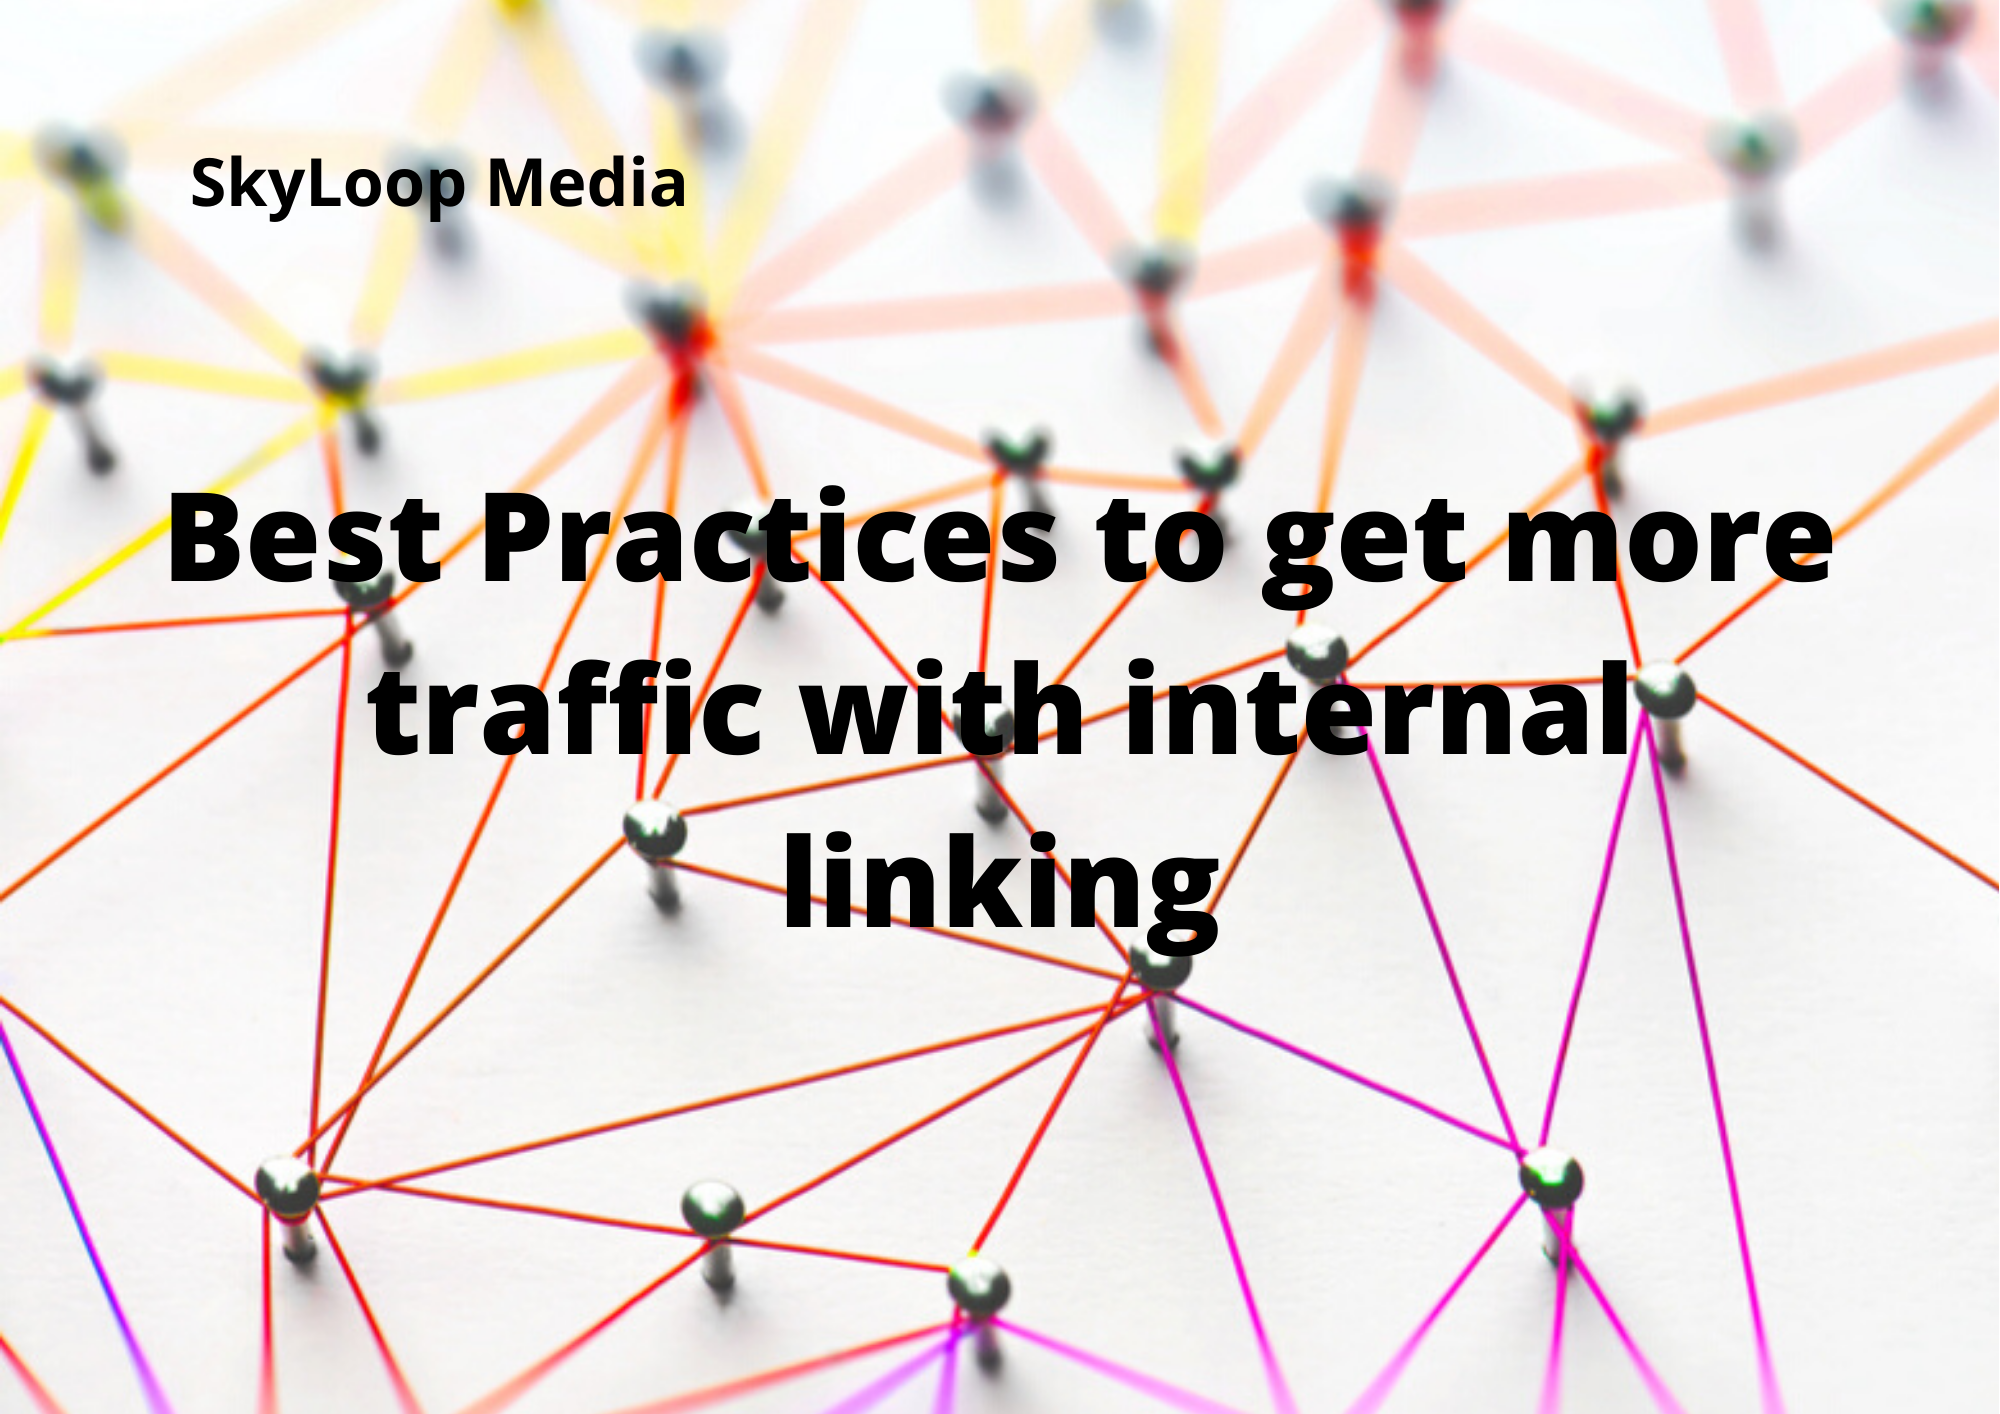 Best Practices to get more traffic with internal linking